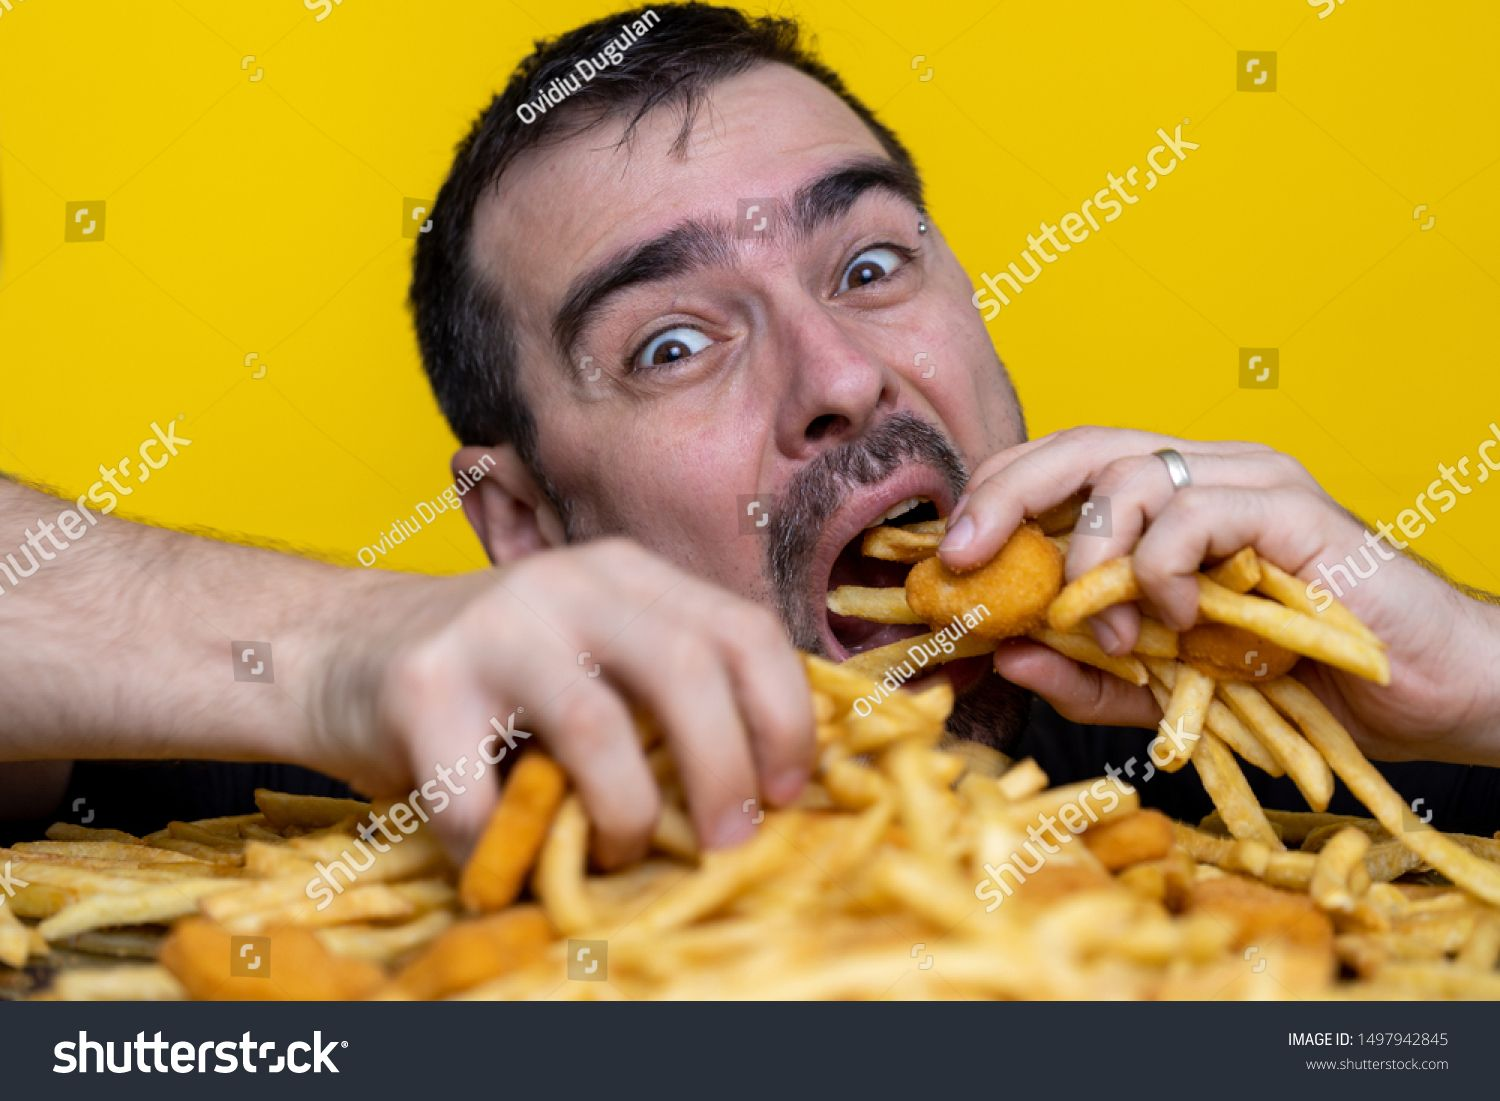 Eating junk food nutrition and dietary health problem concept. Young man eating with two hands a huge amount of unhealthy fast food. Diet temptation resulting in unhealthy nutrition. #Sponsored , #AFF, #problem#health#Young#concept